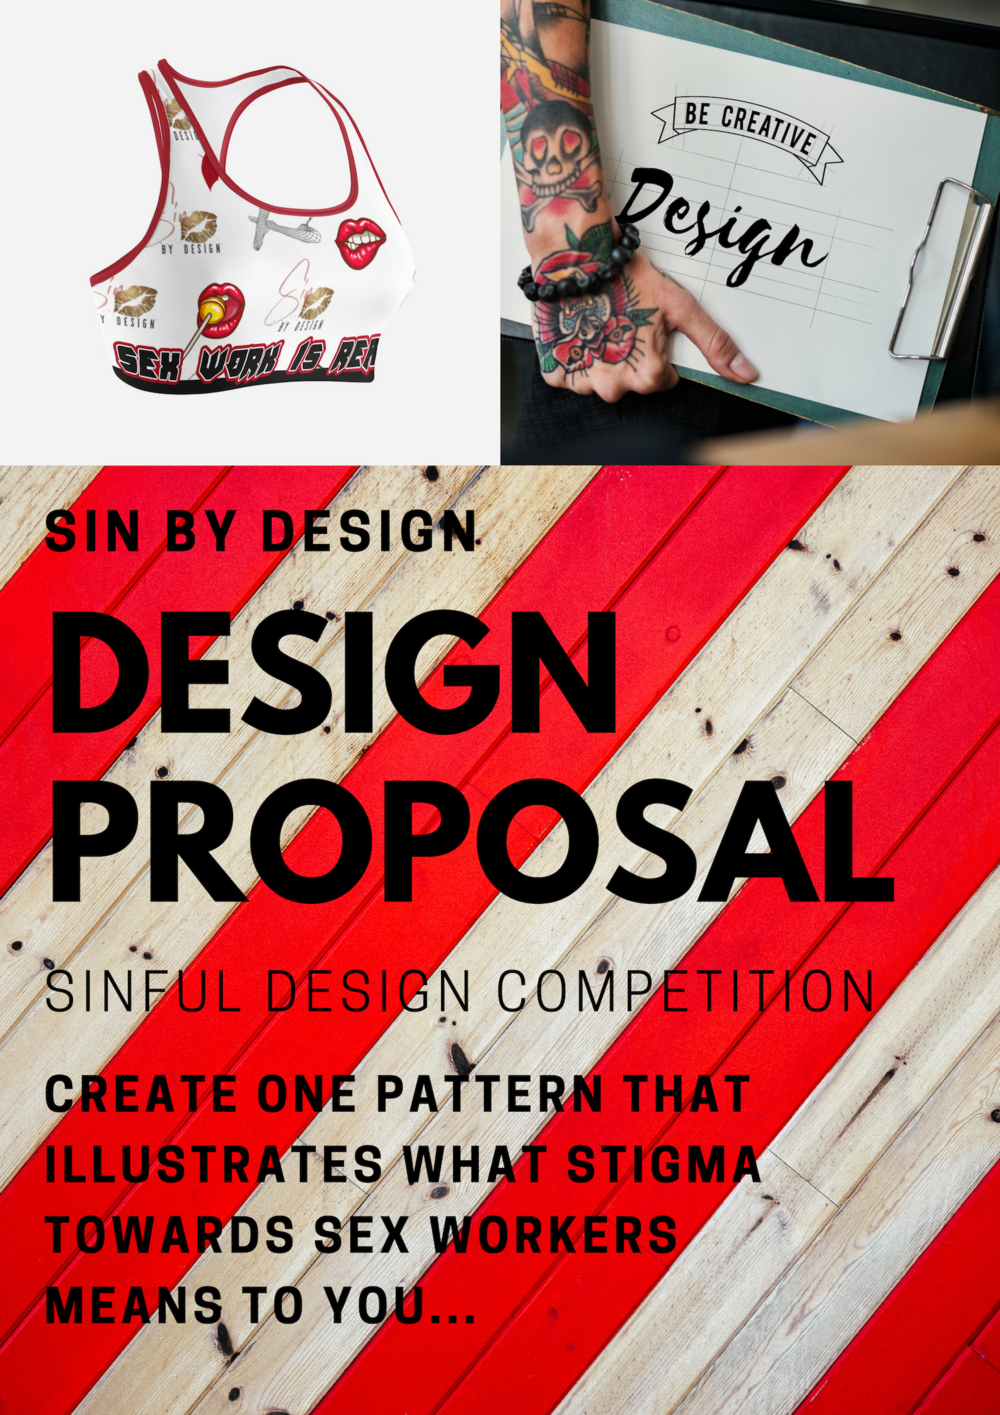 SINFUL DESIGN COMPETITION - DESIGN PROPOSAL MOCK UP SHOWING PATTERN